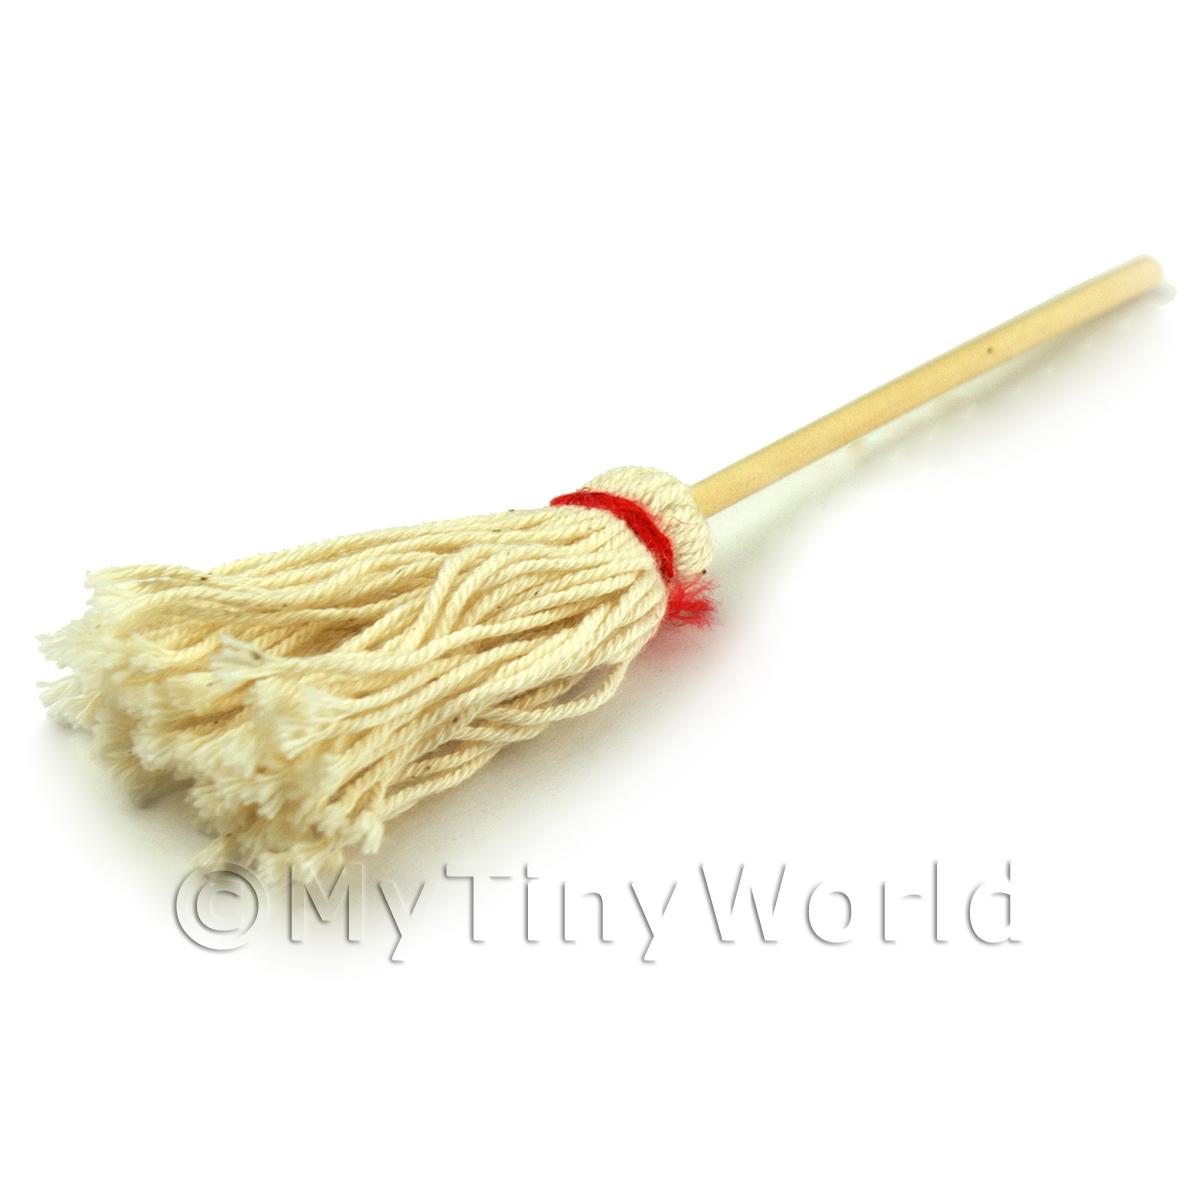 Dolls House Miniature Realistic Wooden Handled Kitchen Mop